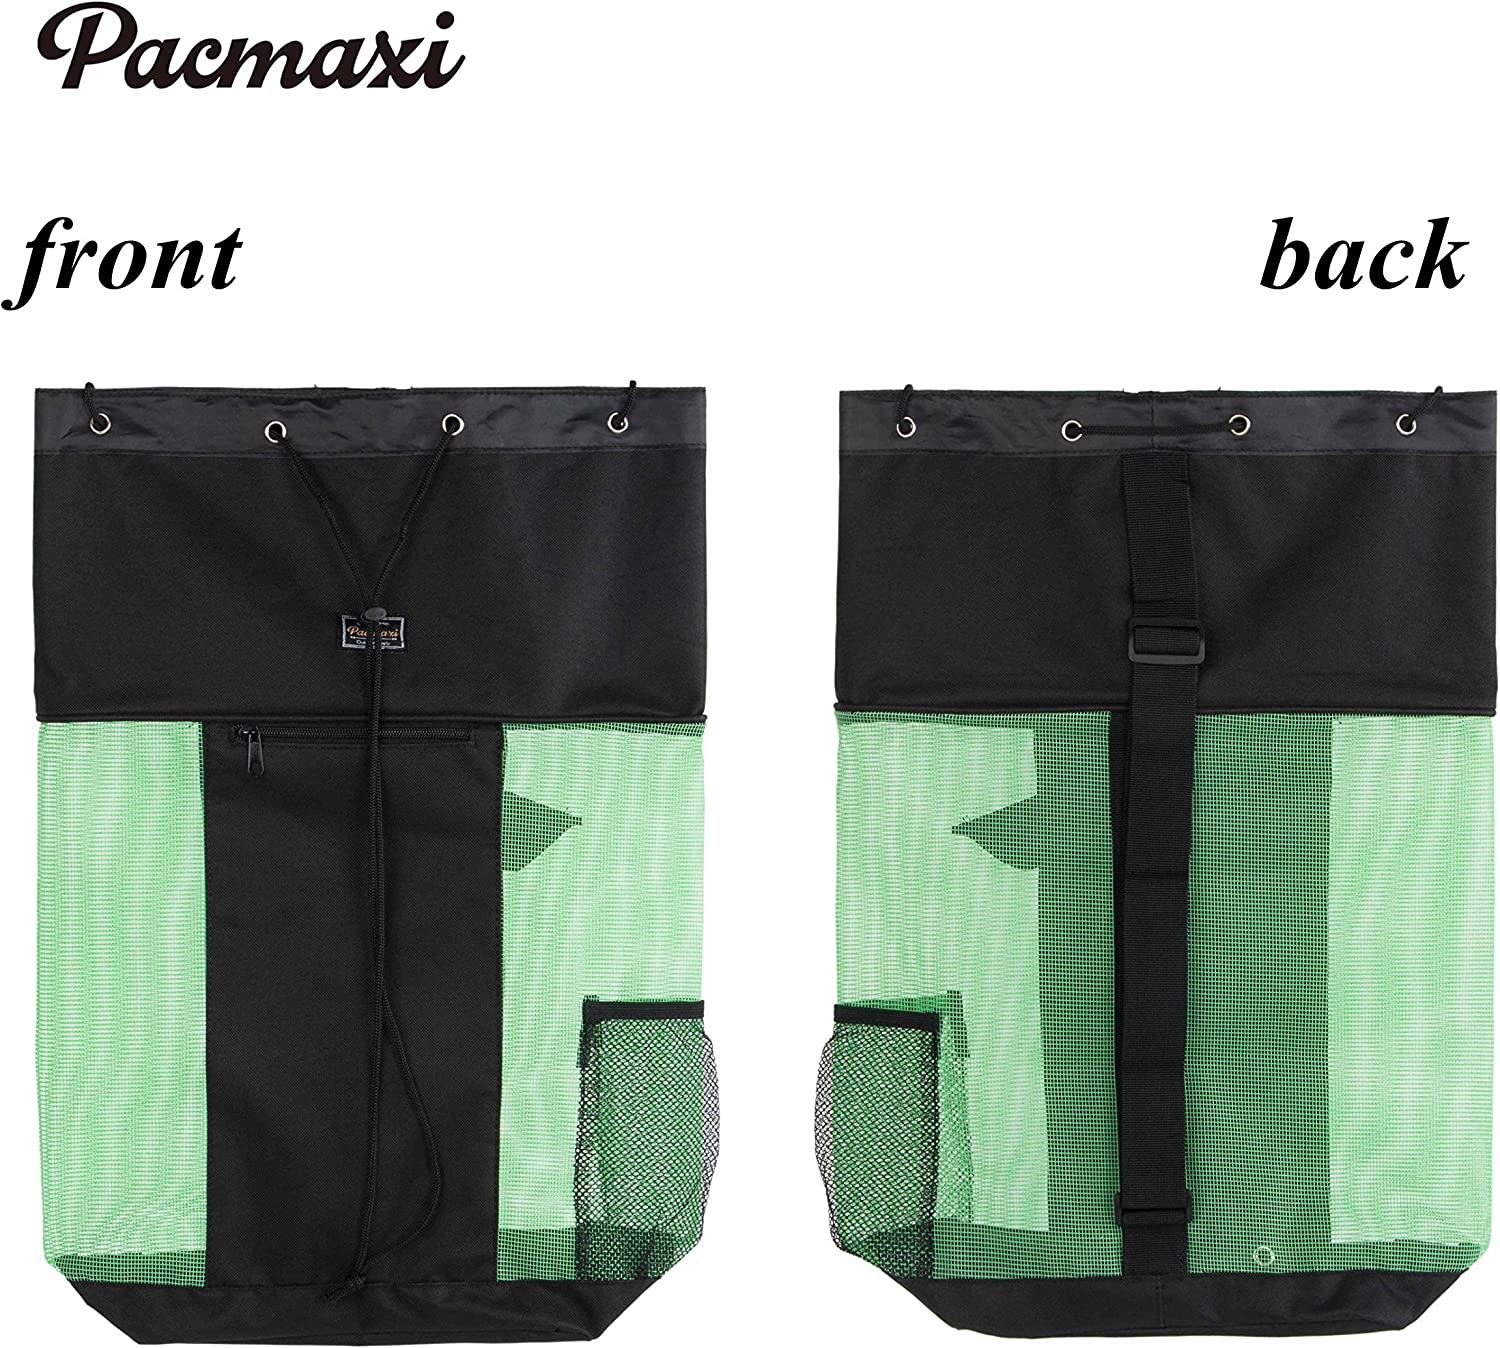 PACMAXI Mesh Scuba Diving Bag, Travel Dive Bag for Scuba or Snorkeling with 1 Zip Pocket and 1 Mesh Pocket, Can Holds Mask, Fins, Top Snorkel, Trek Fins. (Black) : Sports & Outdoors